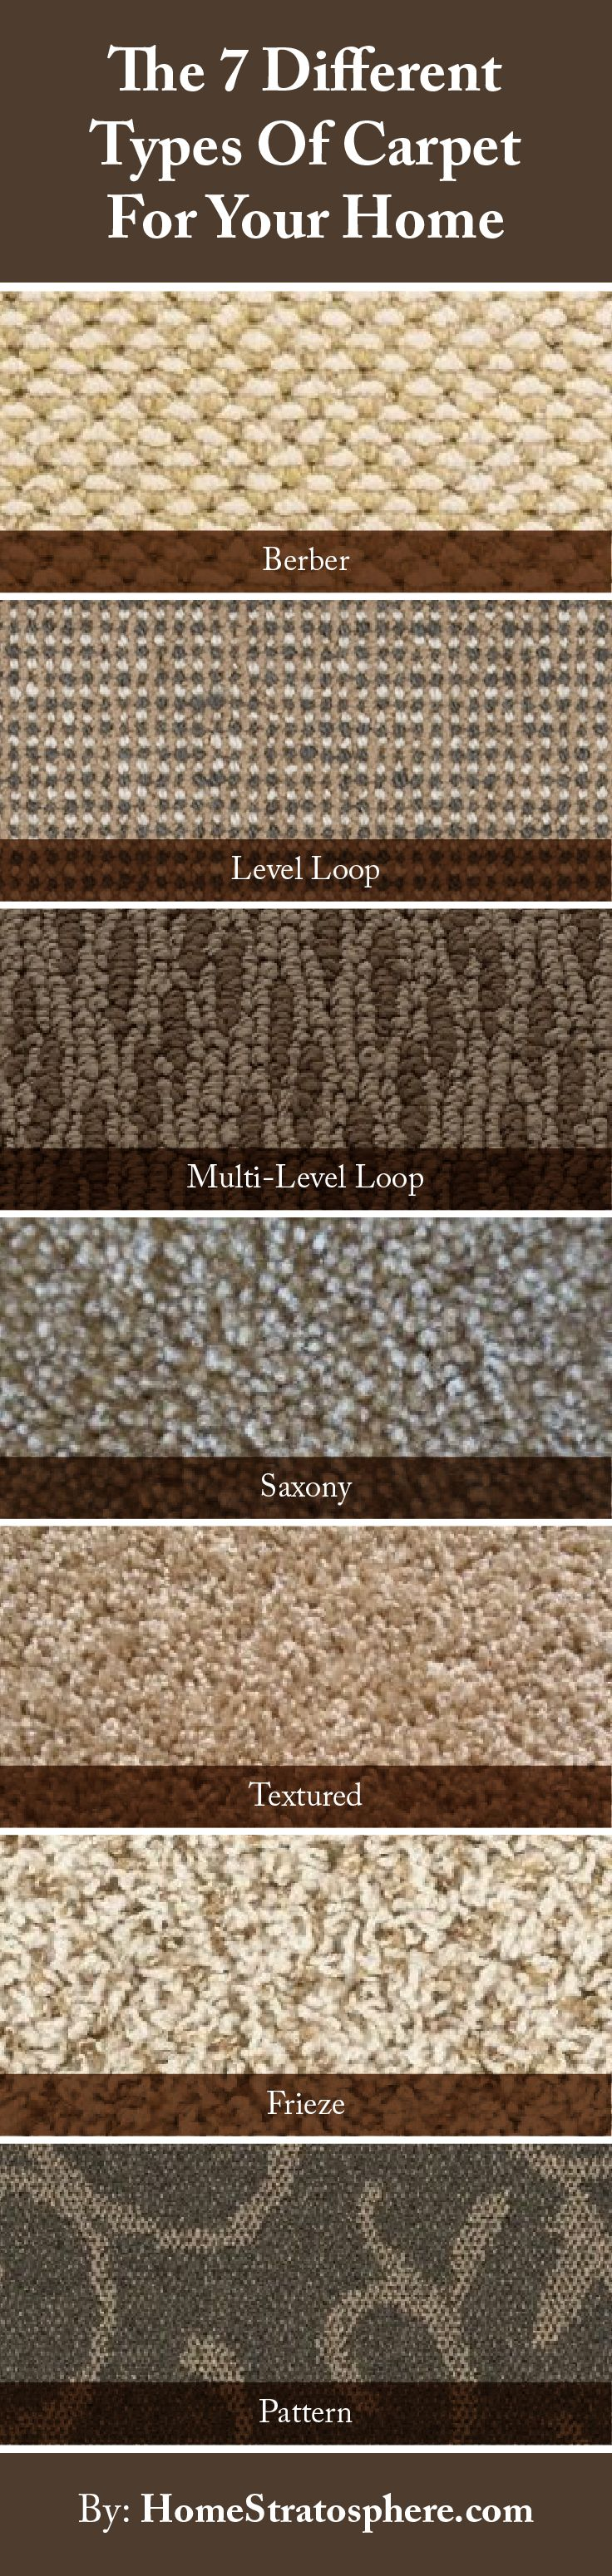 Best Carpet Types Ideas On Pinterest Types Of Carpet Home - Different types of rugs and carpets